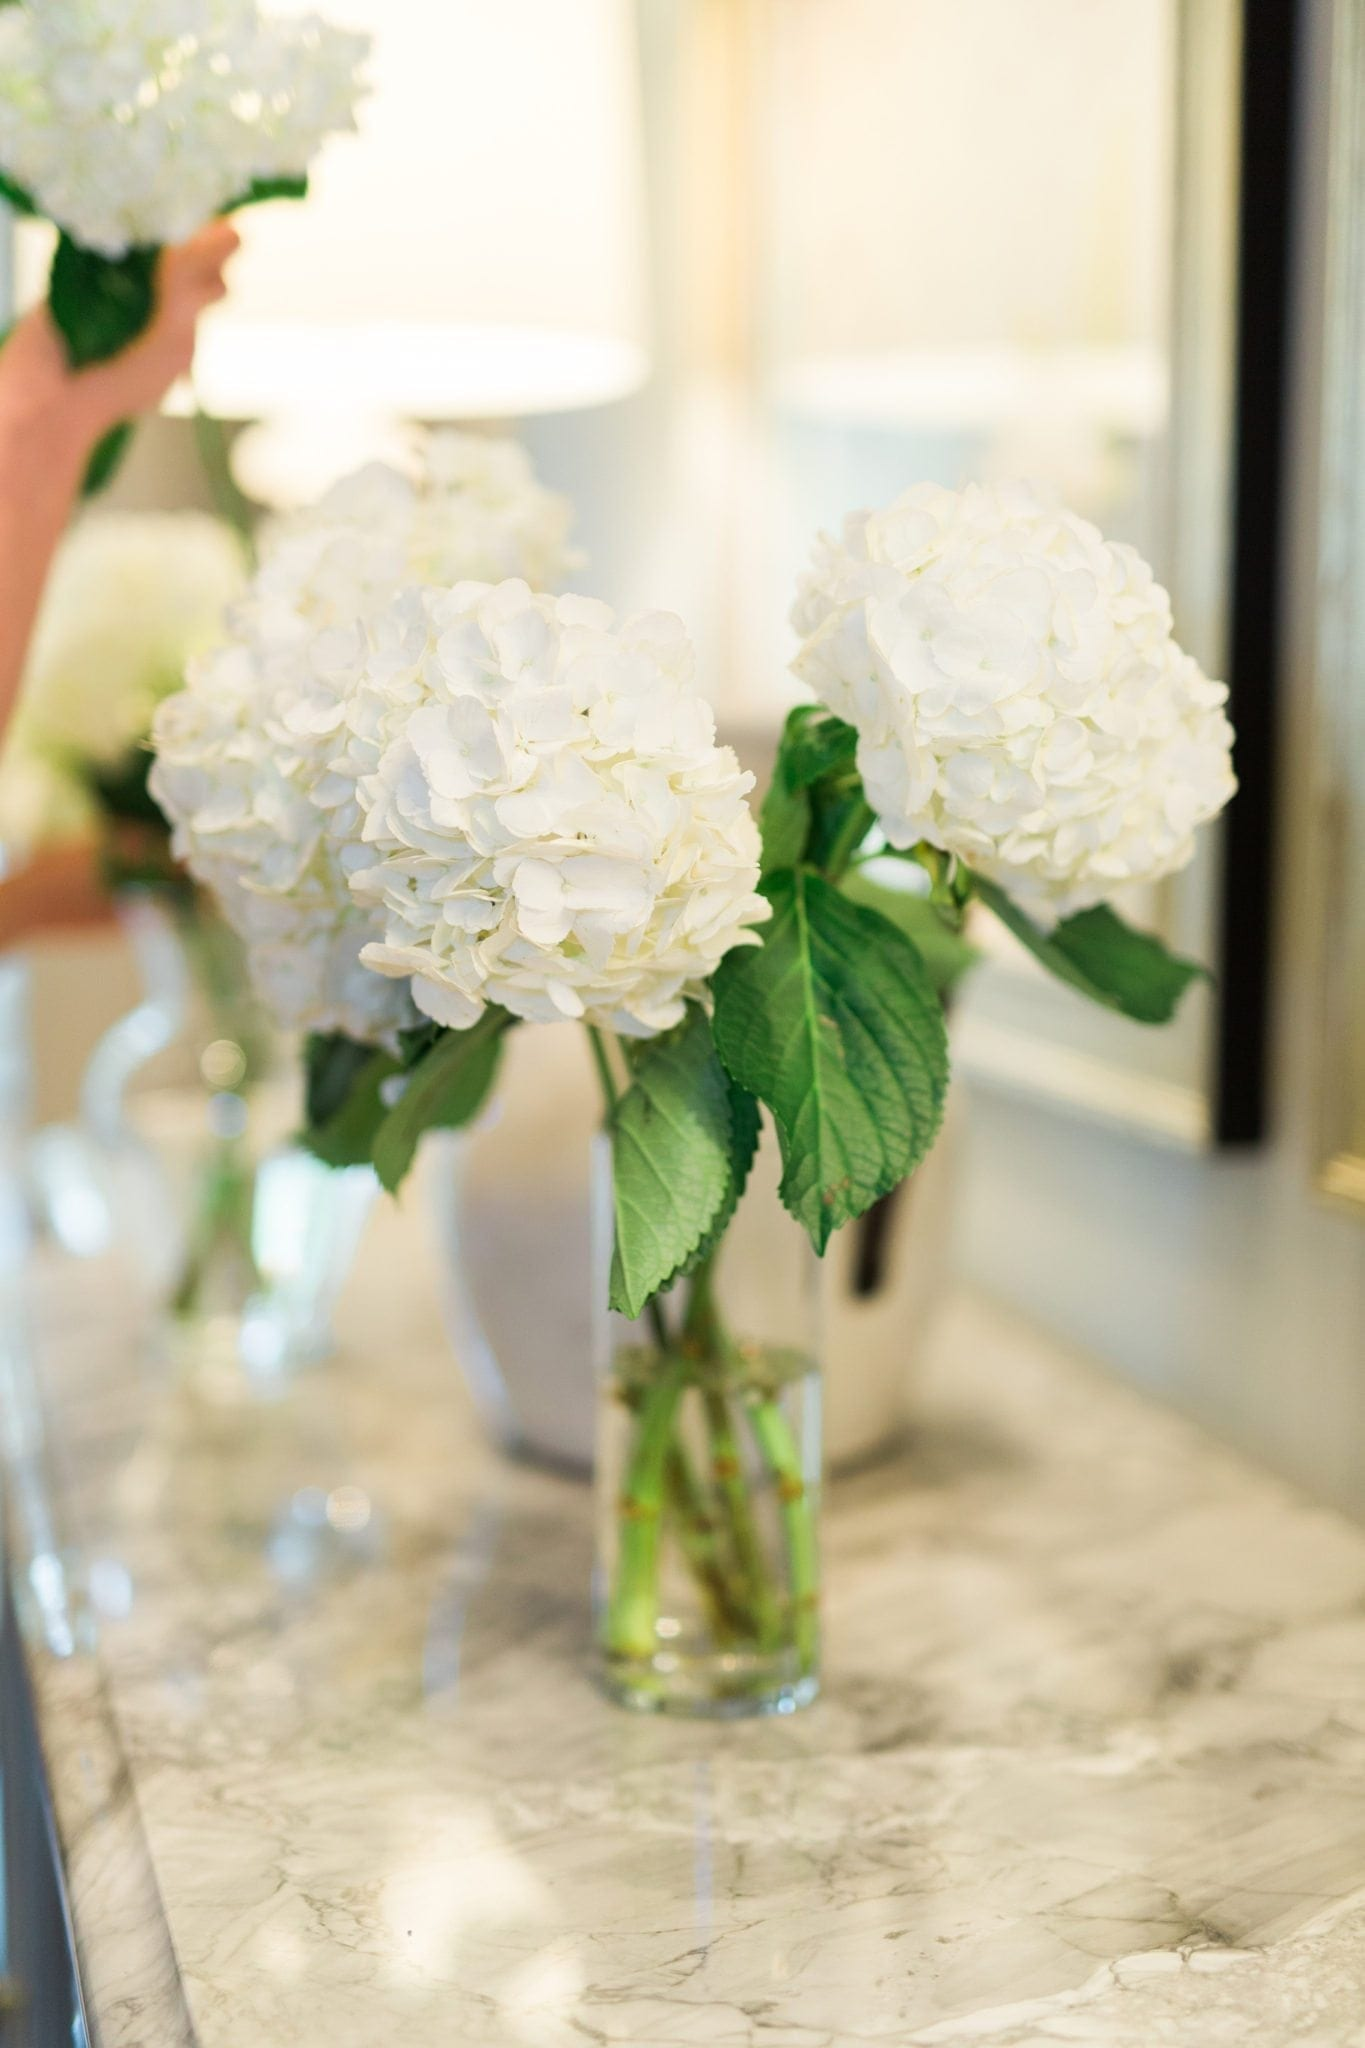 Atlanta home blogger sharing 3 ways to keep flower arrangements alive longer. Learn to keep flowers looking pretty longer after buying them or picking them from hydrangea bush.